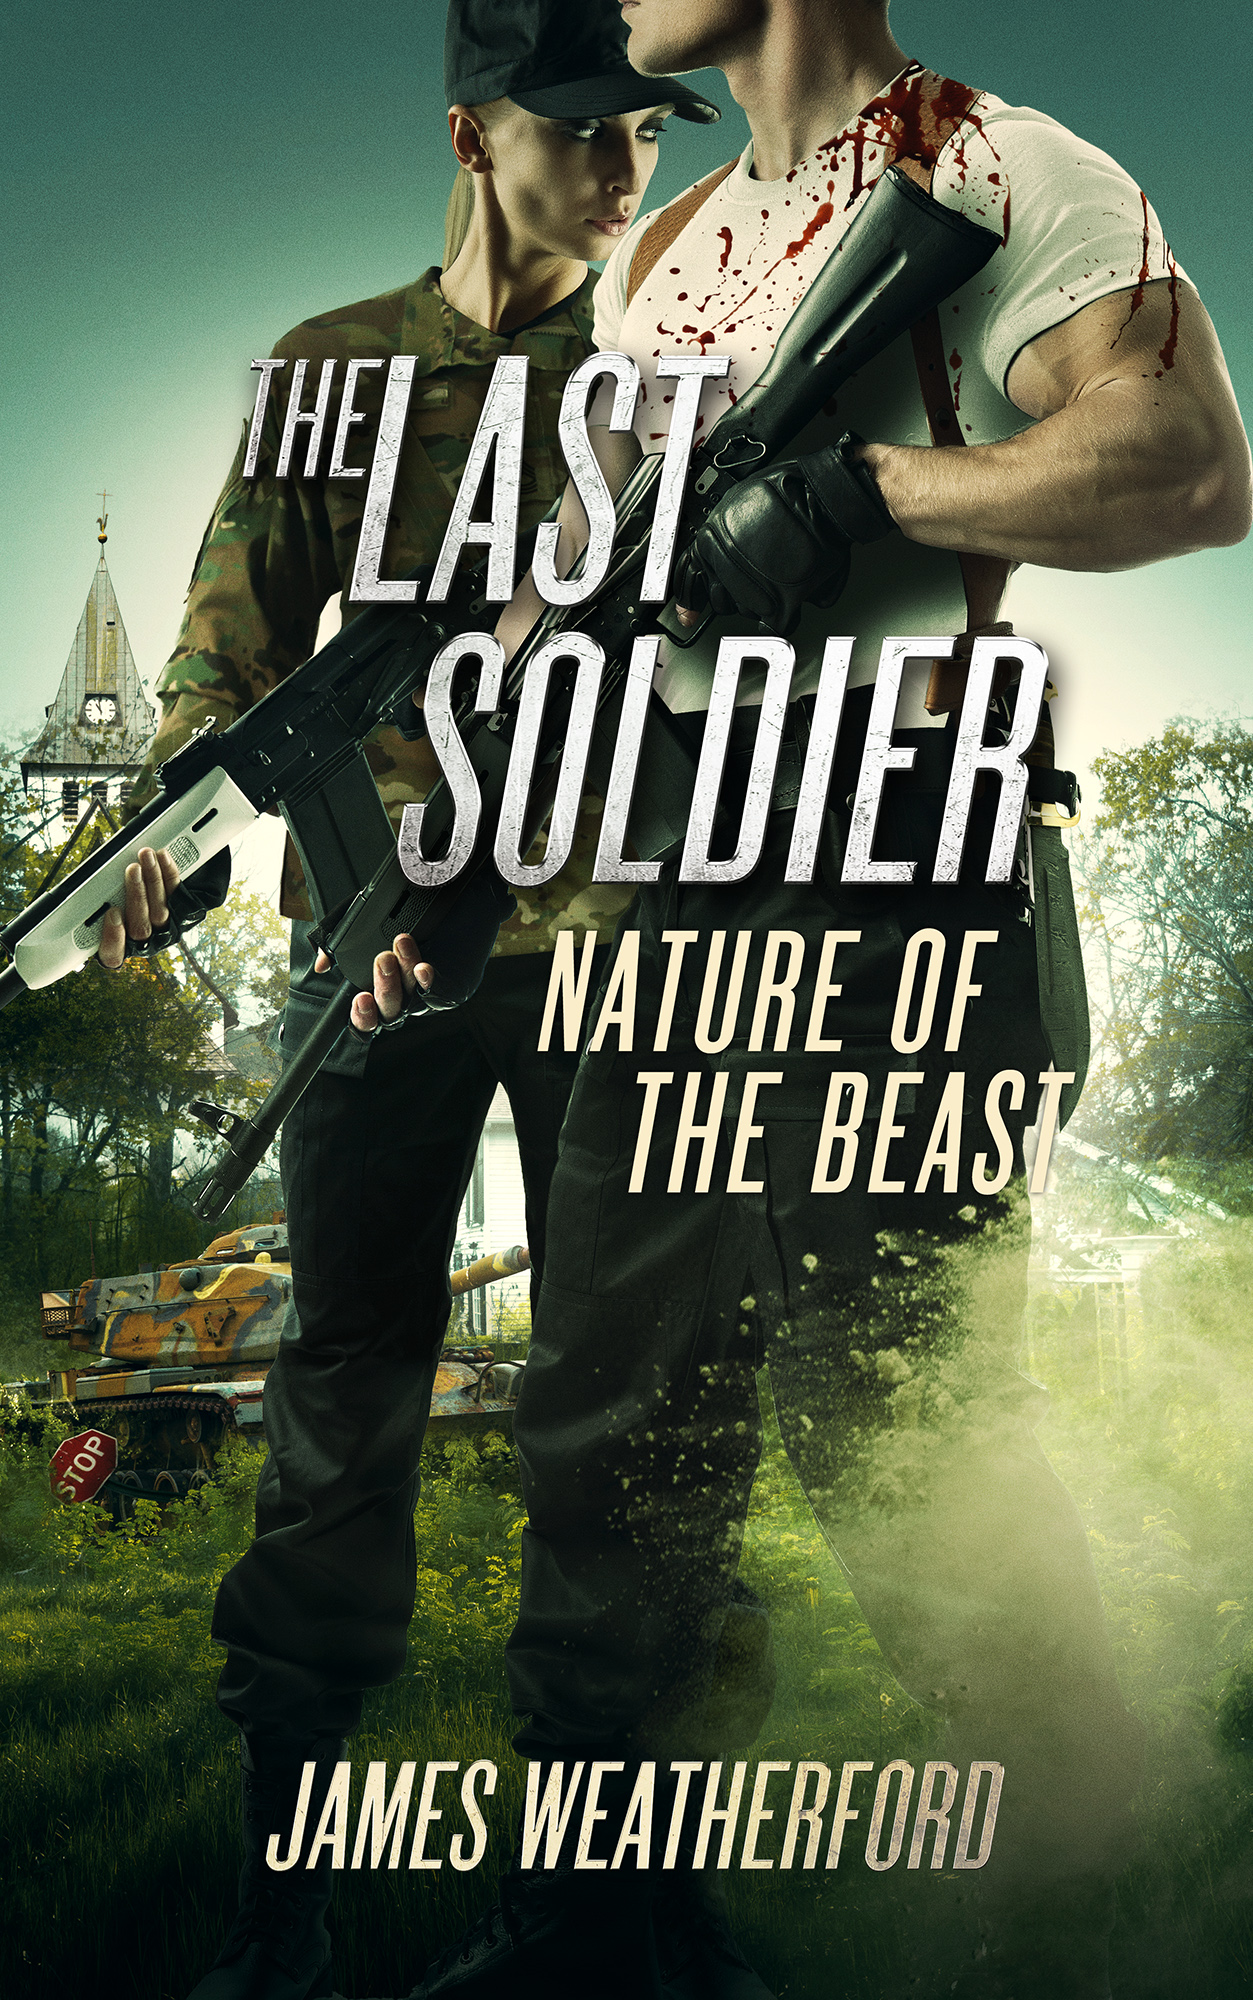 The Last Soldier / Nature of the Beast - book author James Weatherford